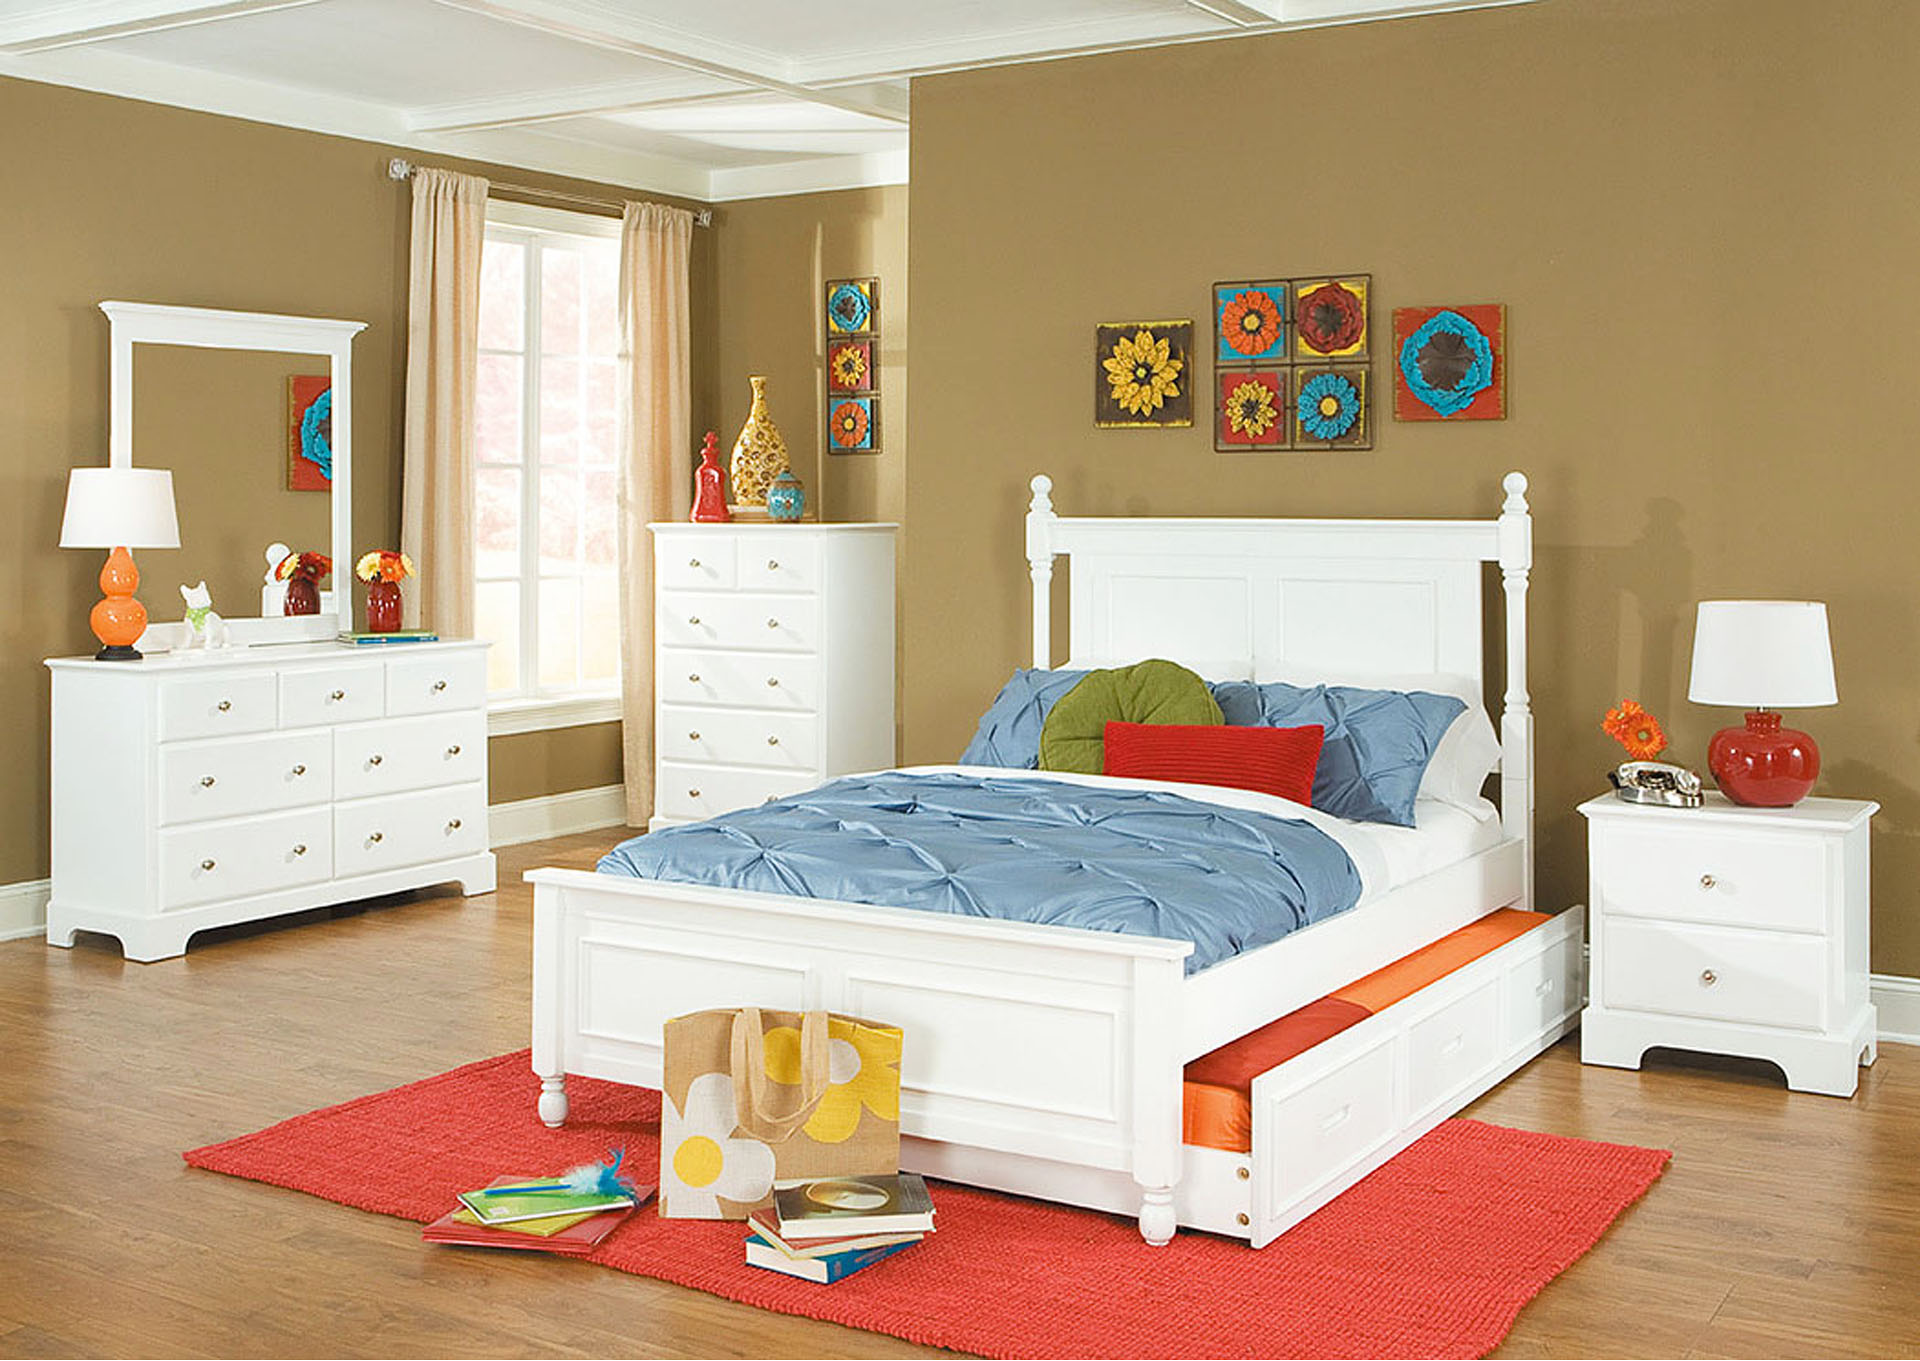 Morelle White Full Captain's Platform Bed w/ Trundle,Homelegance